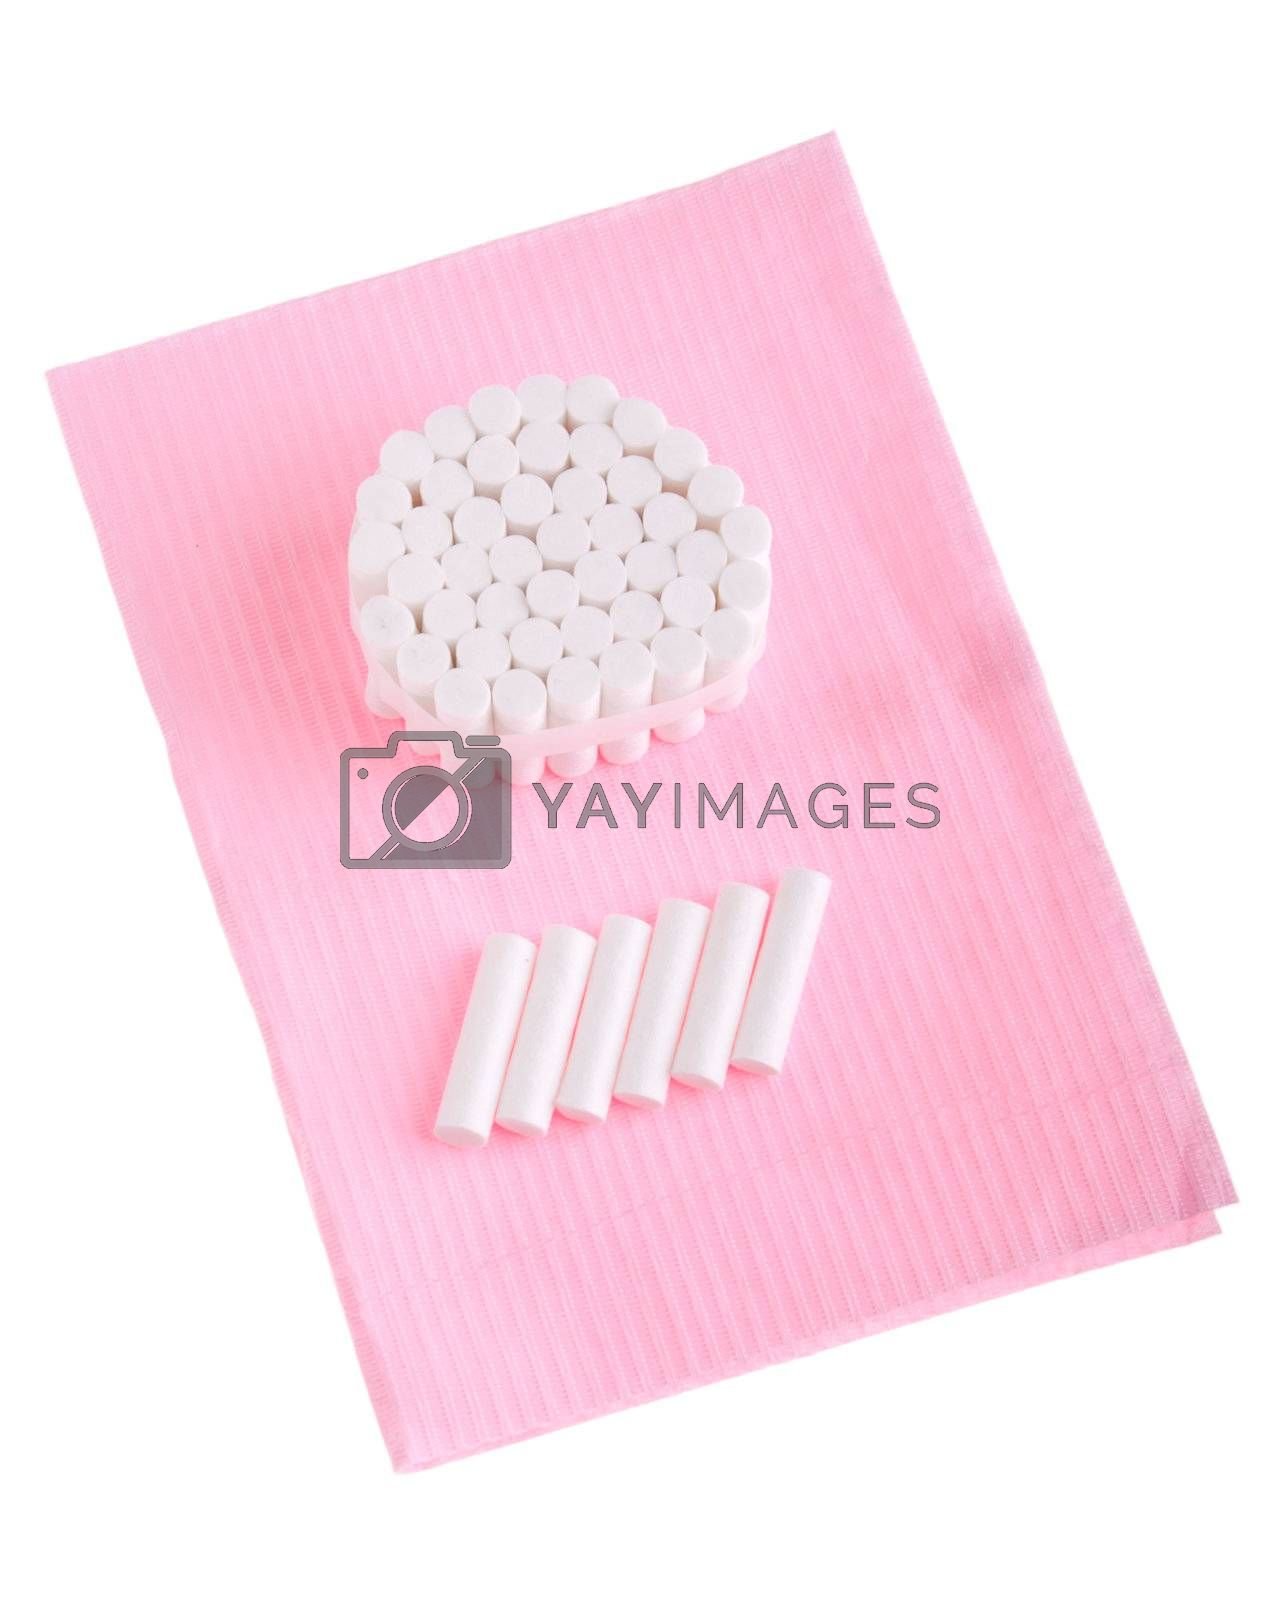 dental cotton rolls on a pink bib (isolated on white background)